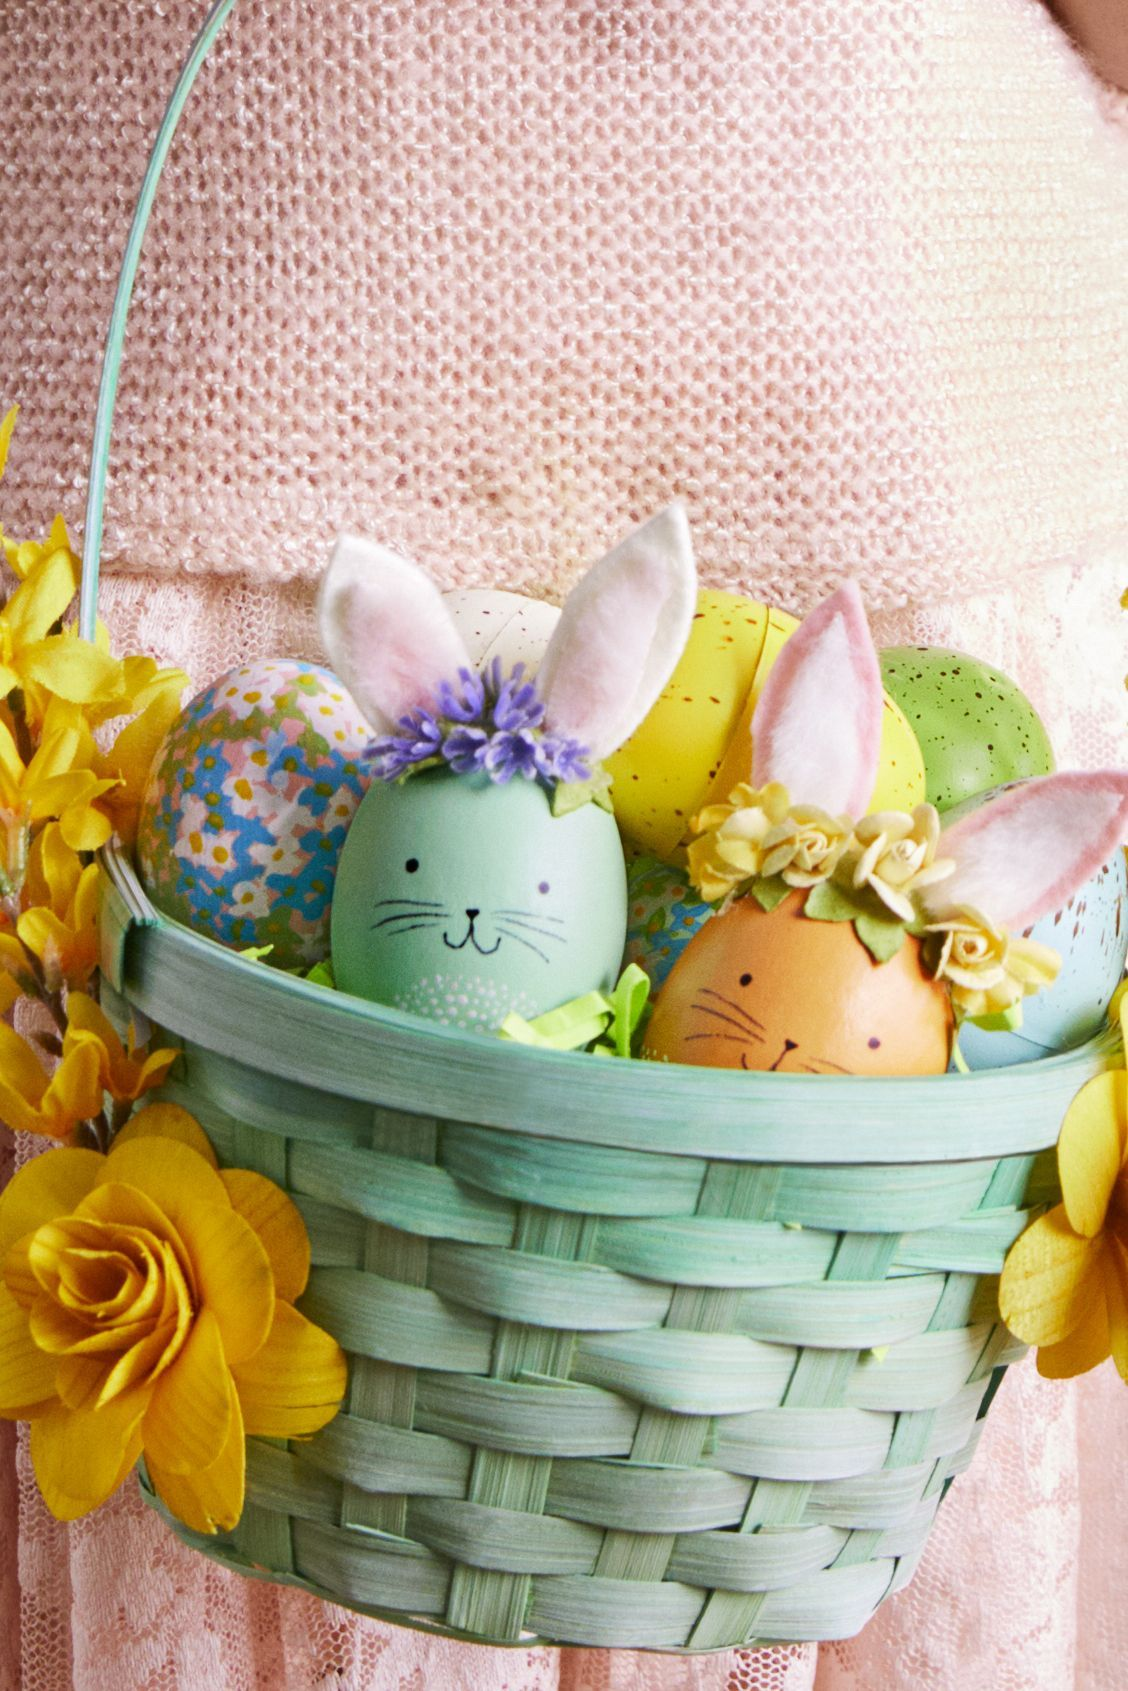 8+ Easy Easter Egg Decorating Ideas - Creative Designs for Easter